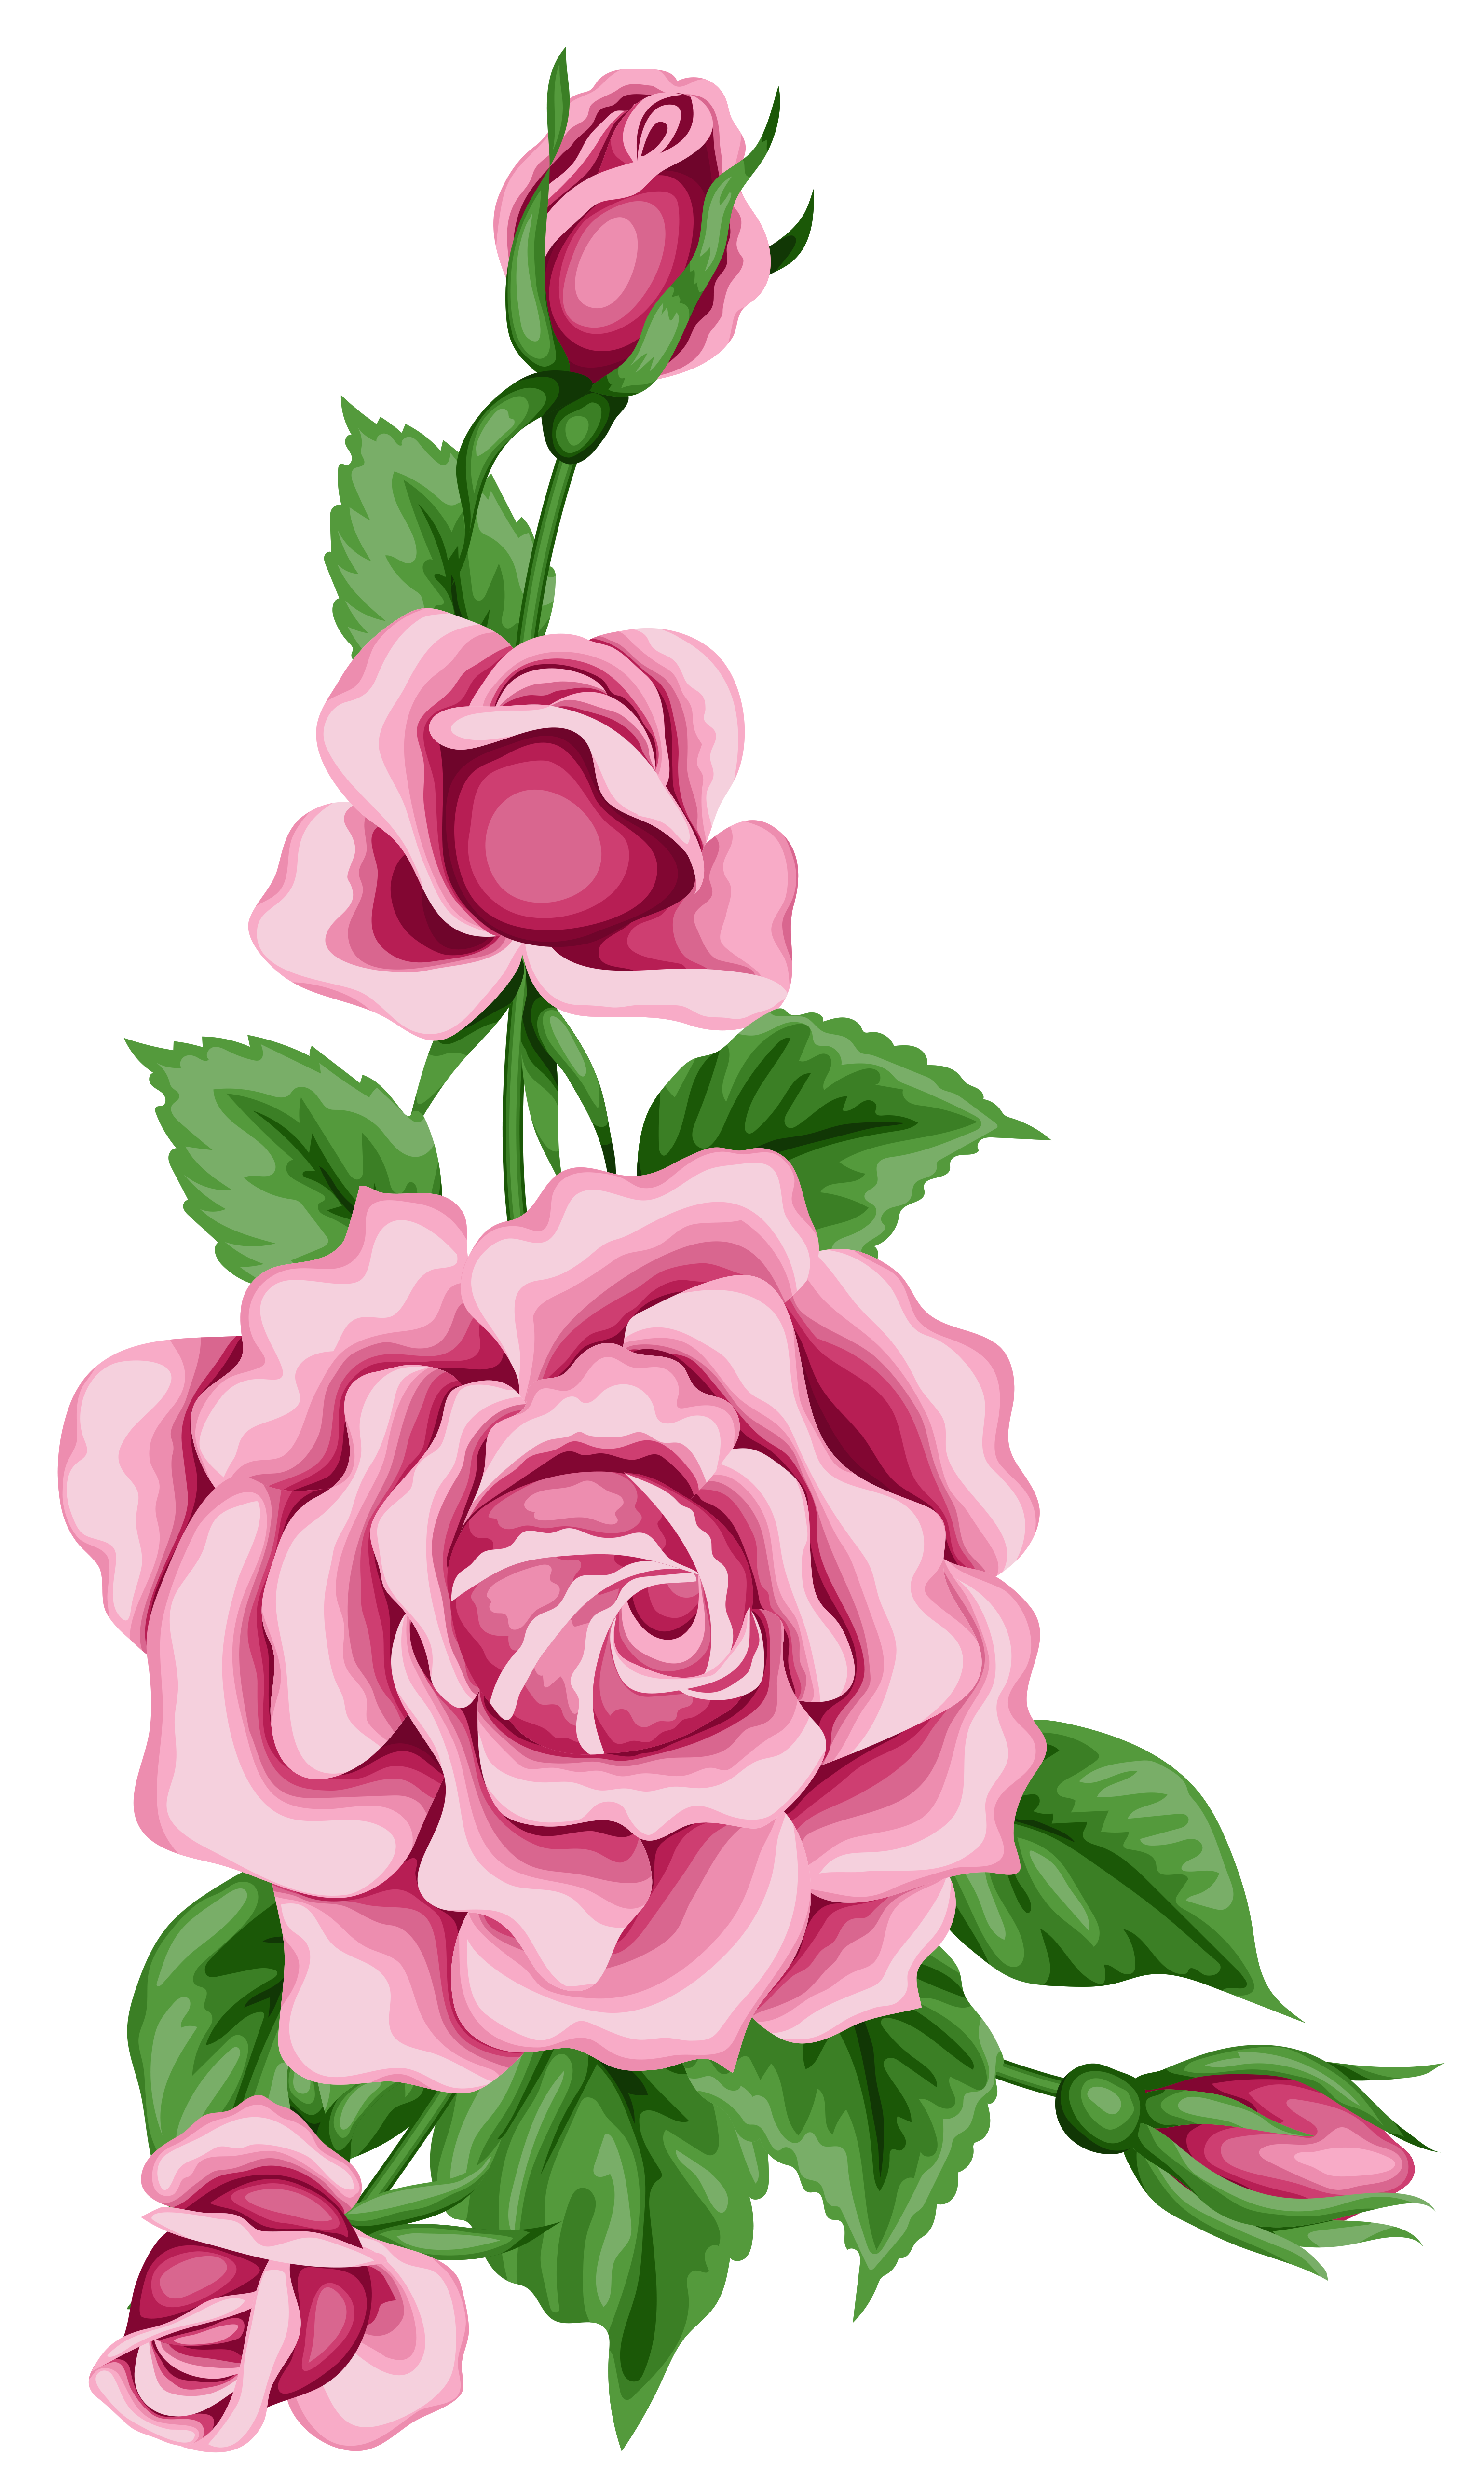 Roses Decoration Png Clipart Image Flower Clipart Digital Flowers Flower Art Painting